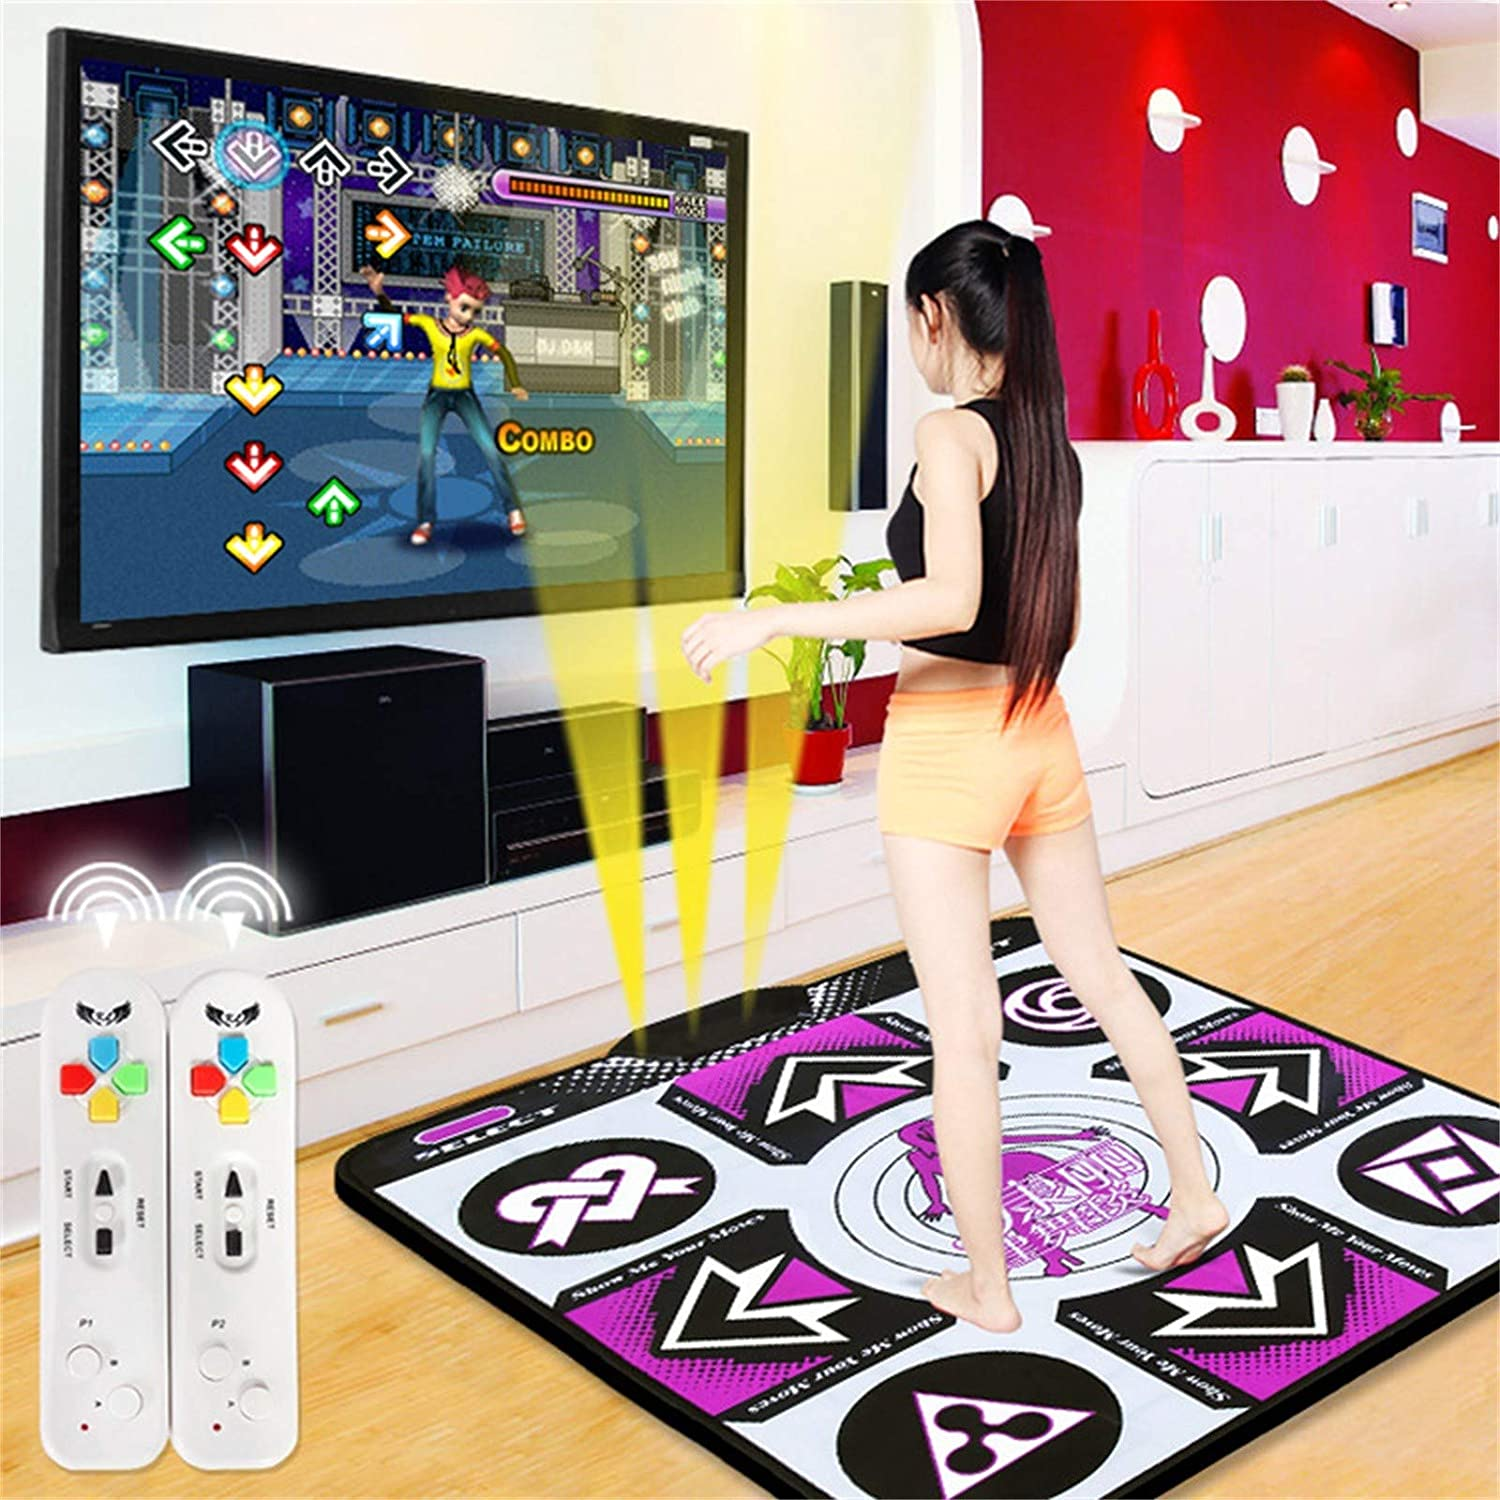 Yoga Fitness Dancing Step Dance Mats for PC TV Plug /& Play B Double Dance Mat for Kids Adults I Non-Slip Wireless Dancer Step Pads W// 150 Games and AUX Music Levels